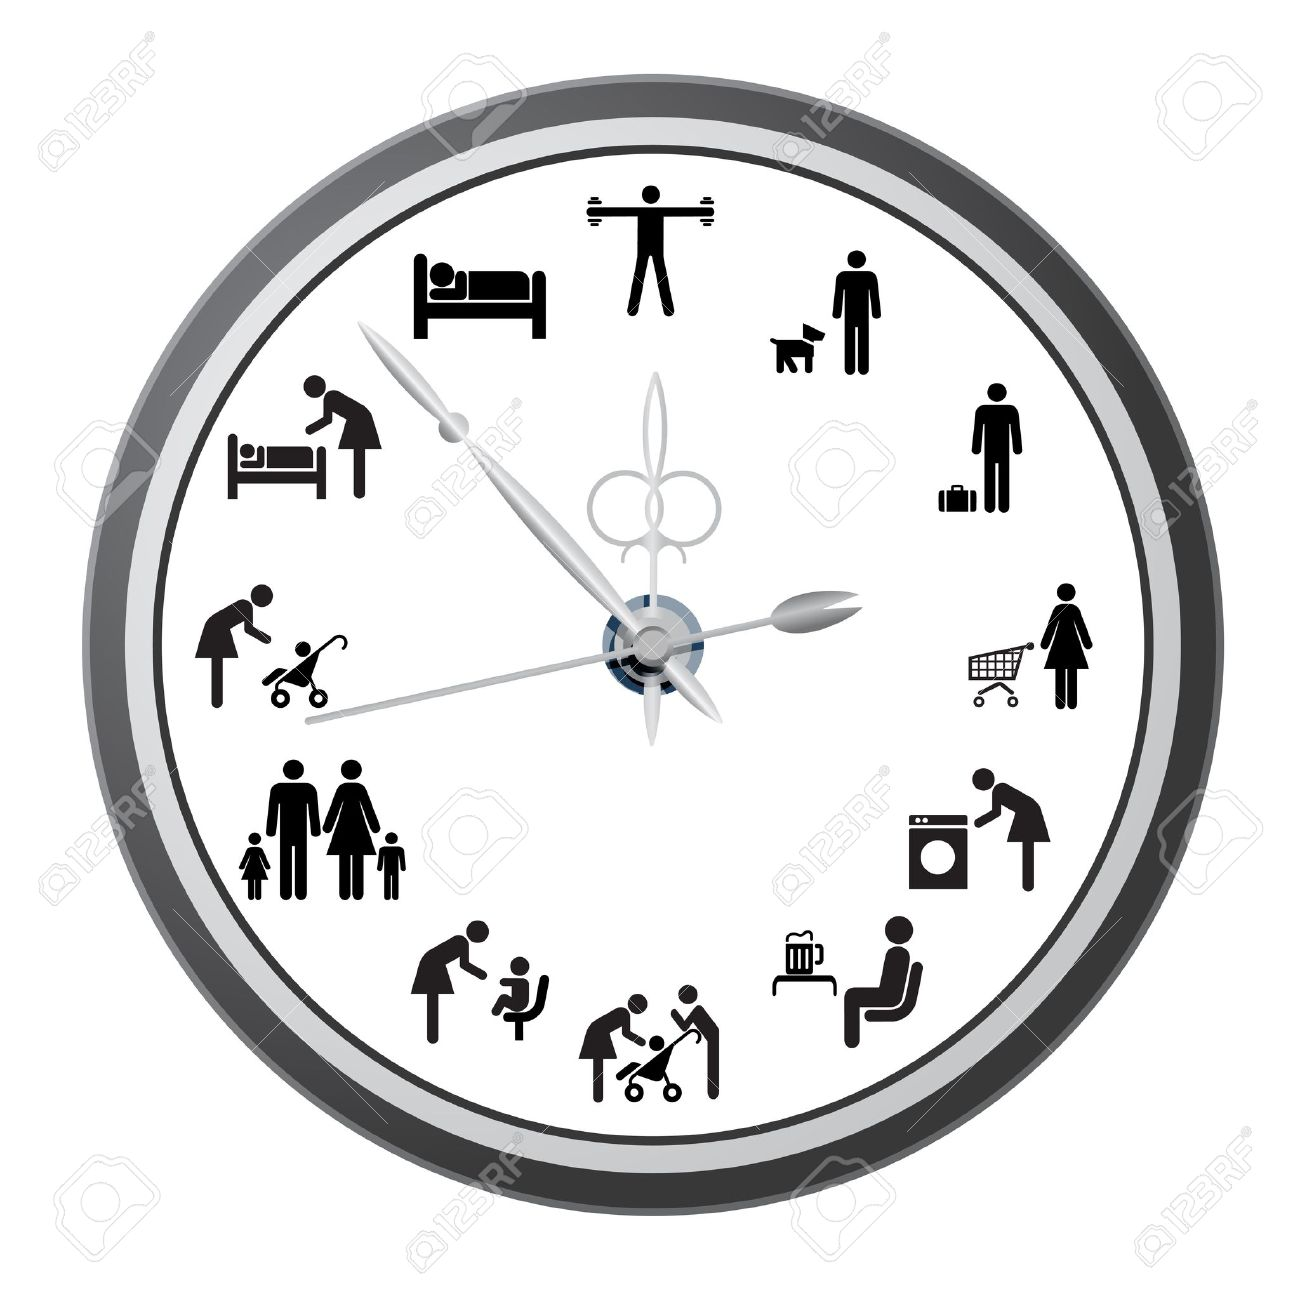 Clock Of Icons Of People, The Concept Of The Working Day Vector.